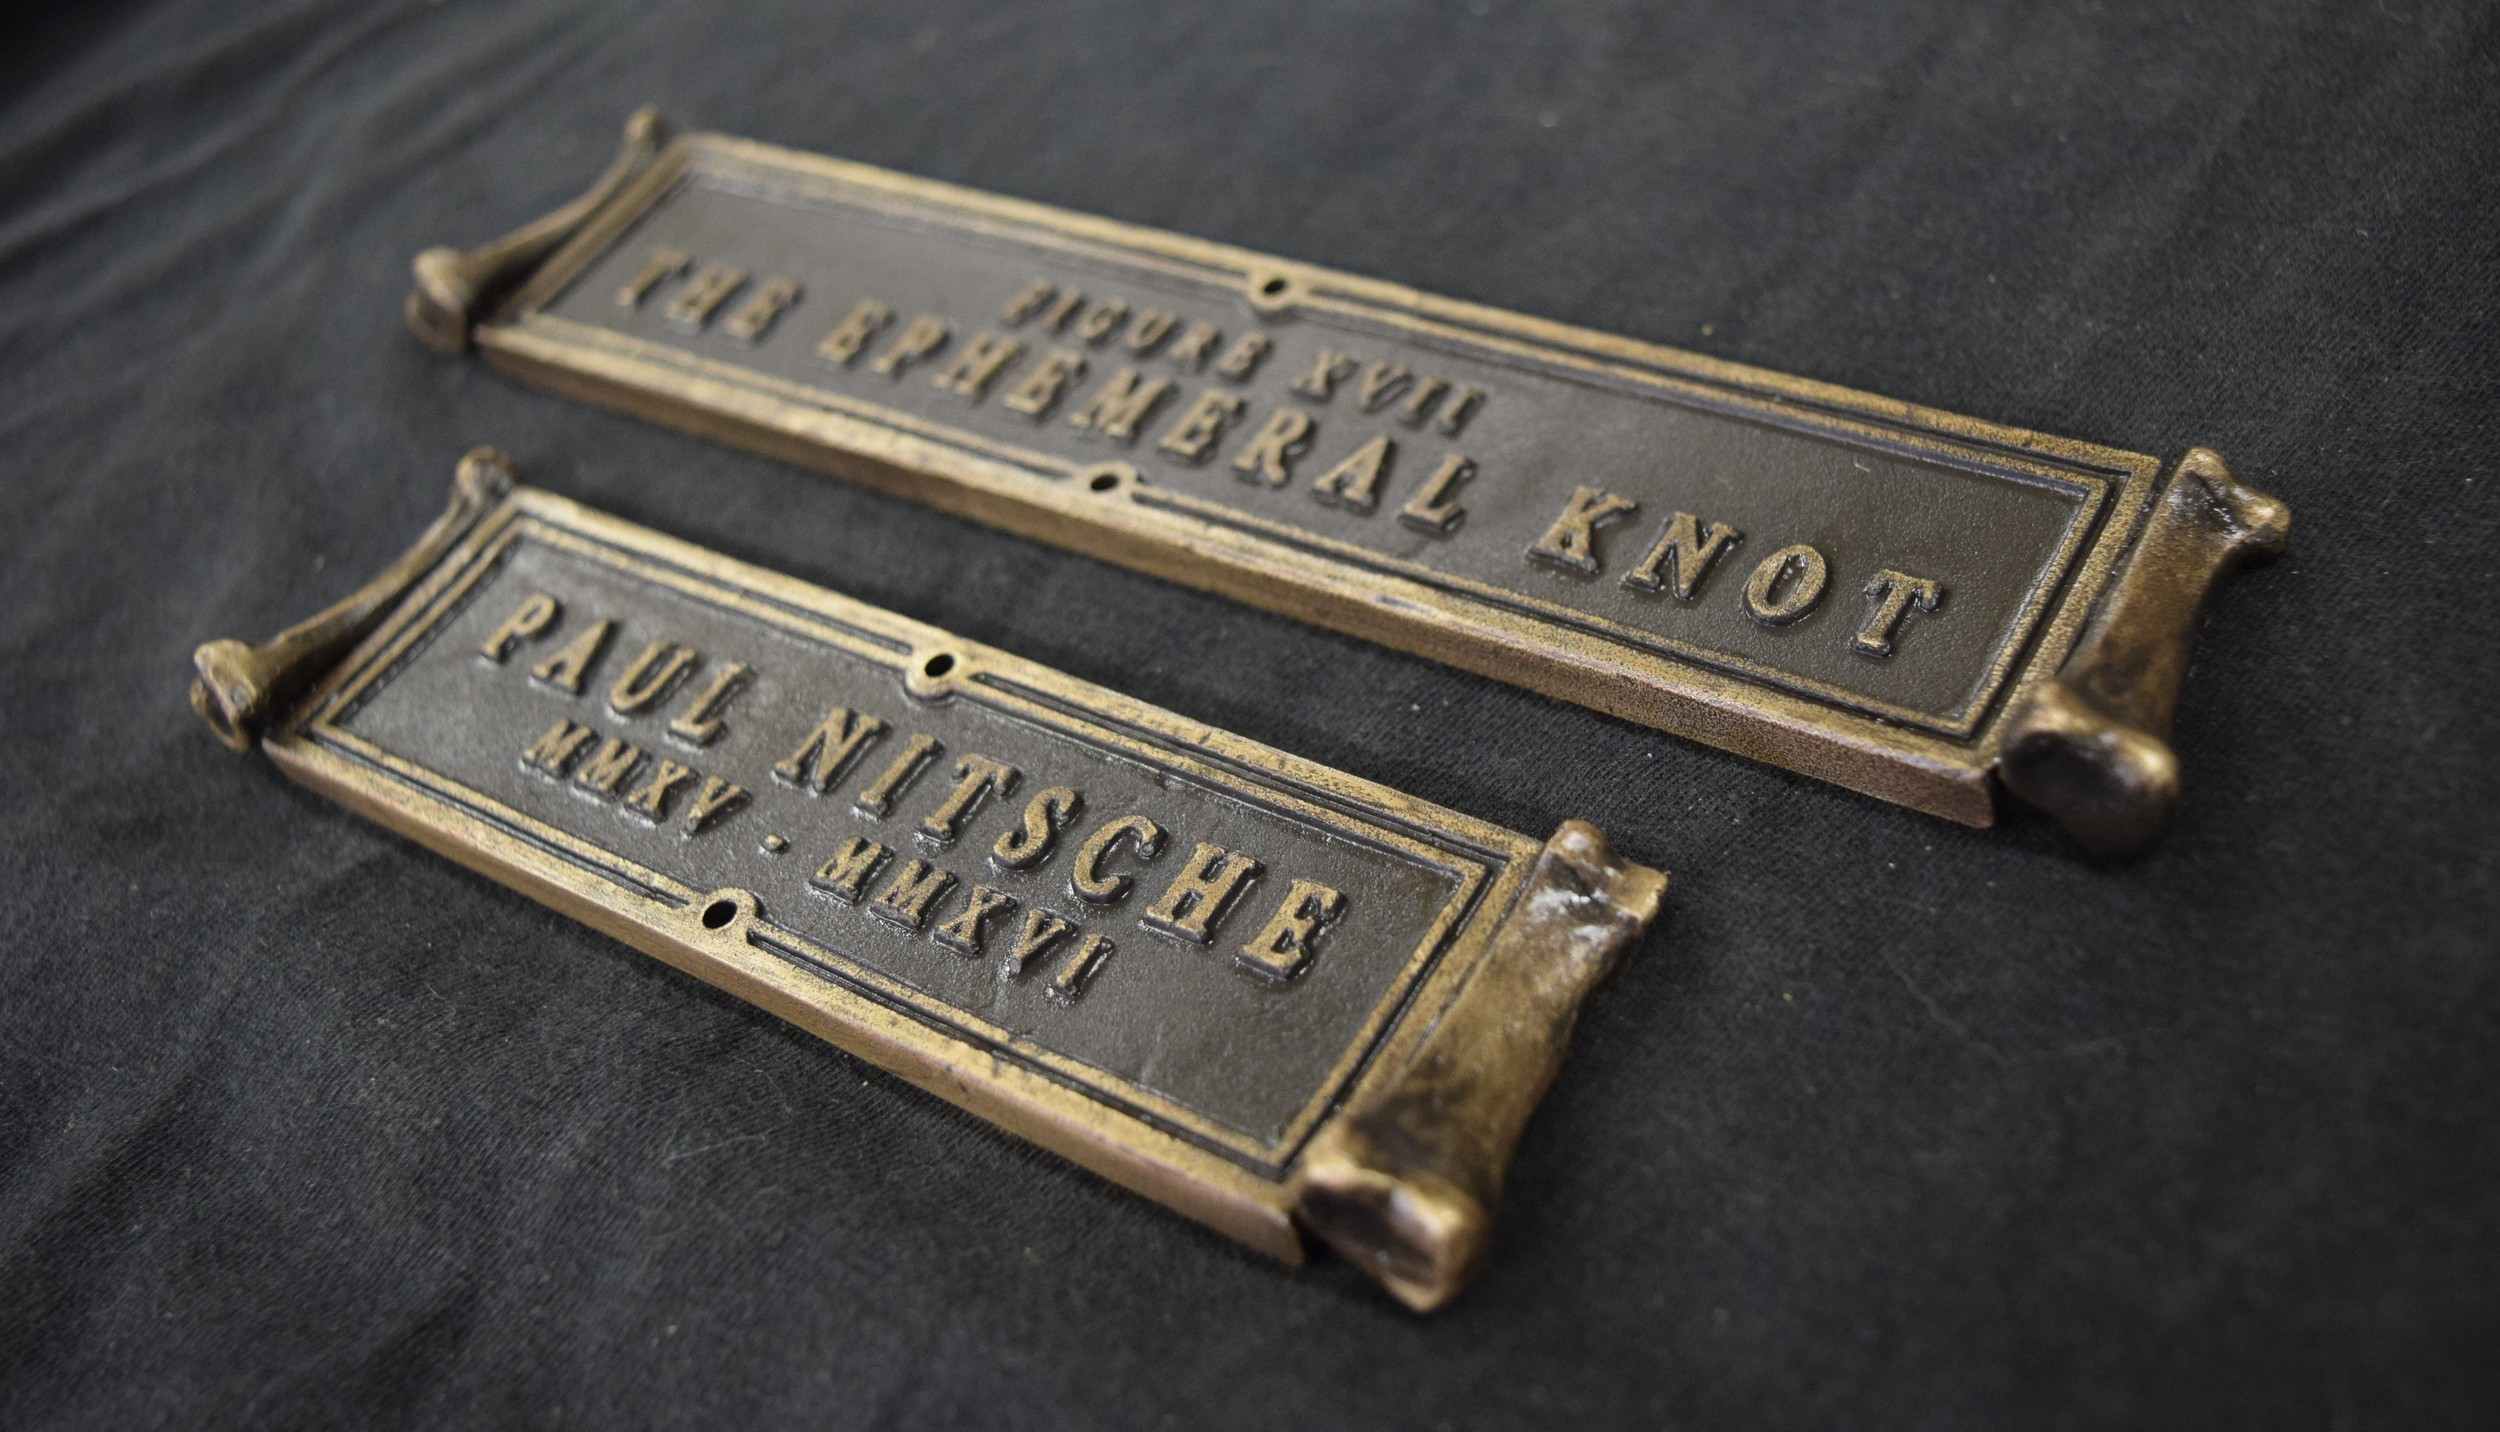 The bronze title and name plates for The Ephemeral Knot.